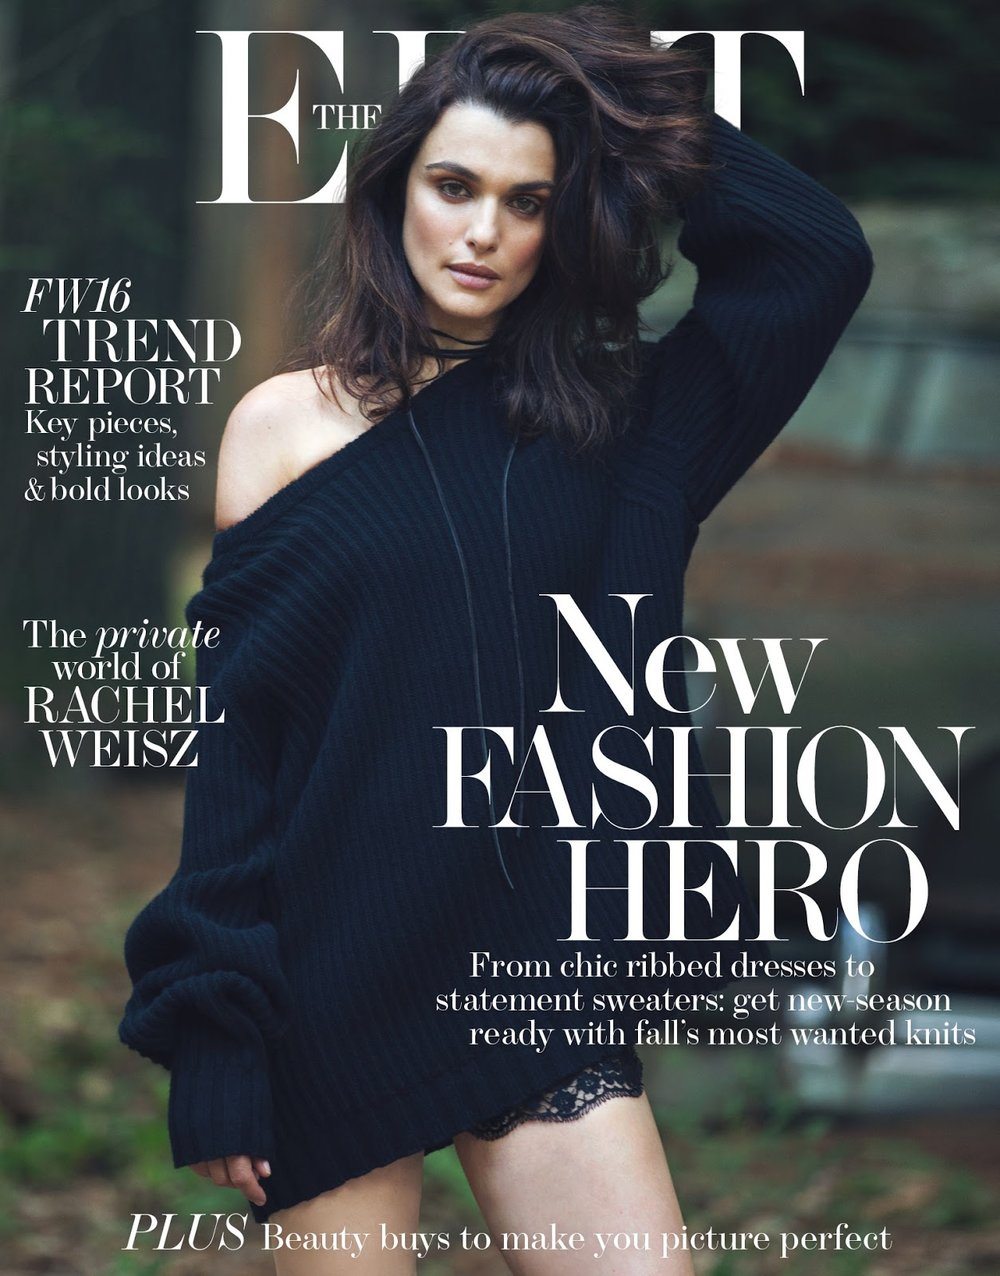 rachel-weisz-david-bellemere-The+edit+Aug+25th+-++(2)